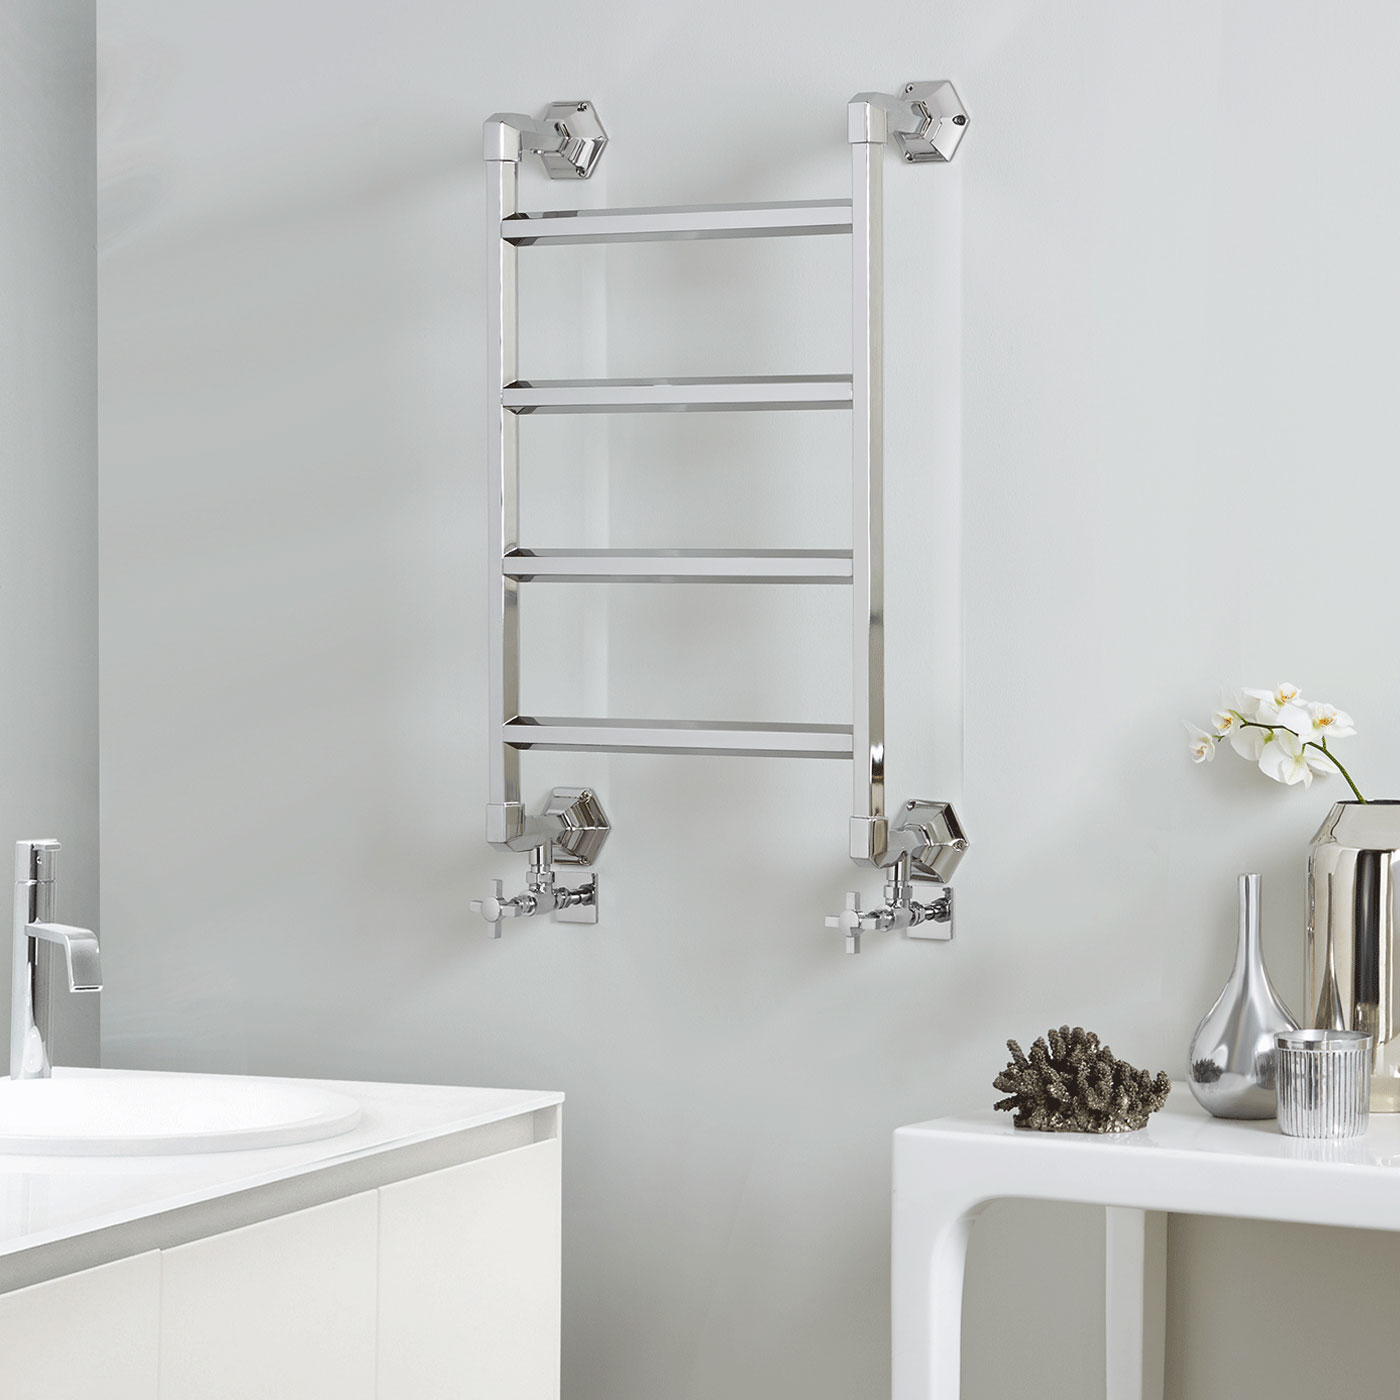 Vogue Art Moderne 4 Heated Towel Rail 835mm H x 700mm W Central Heating